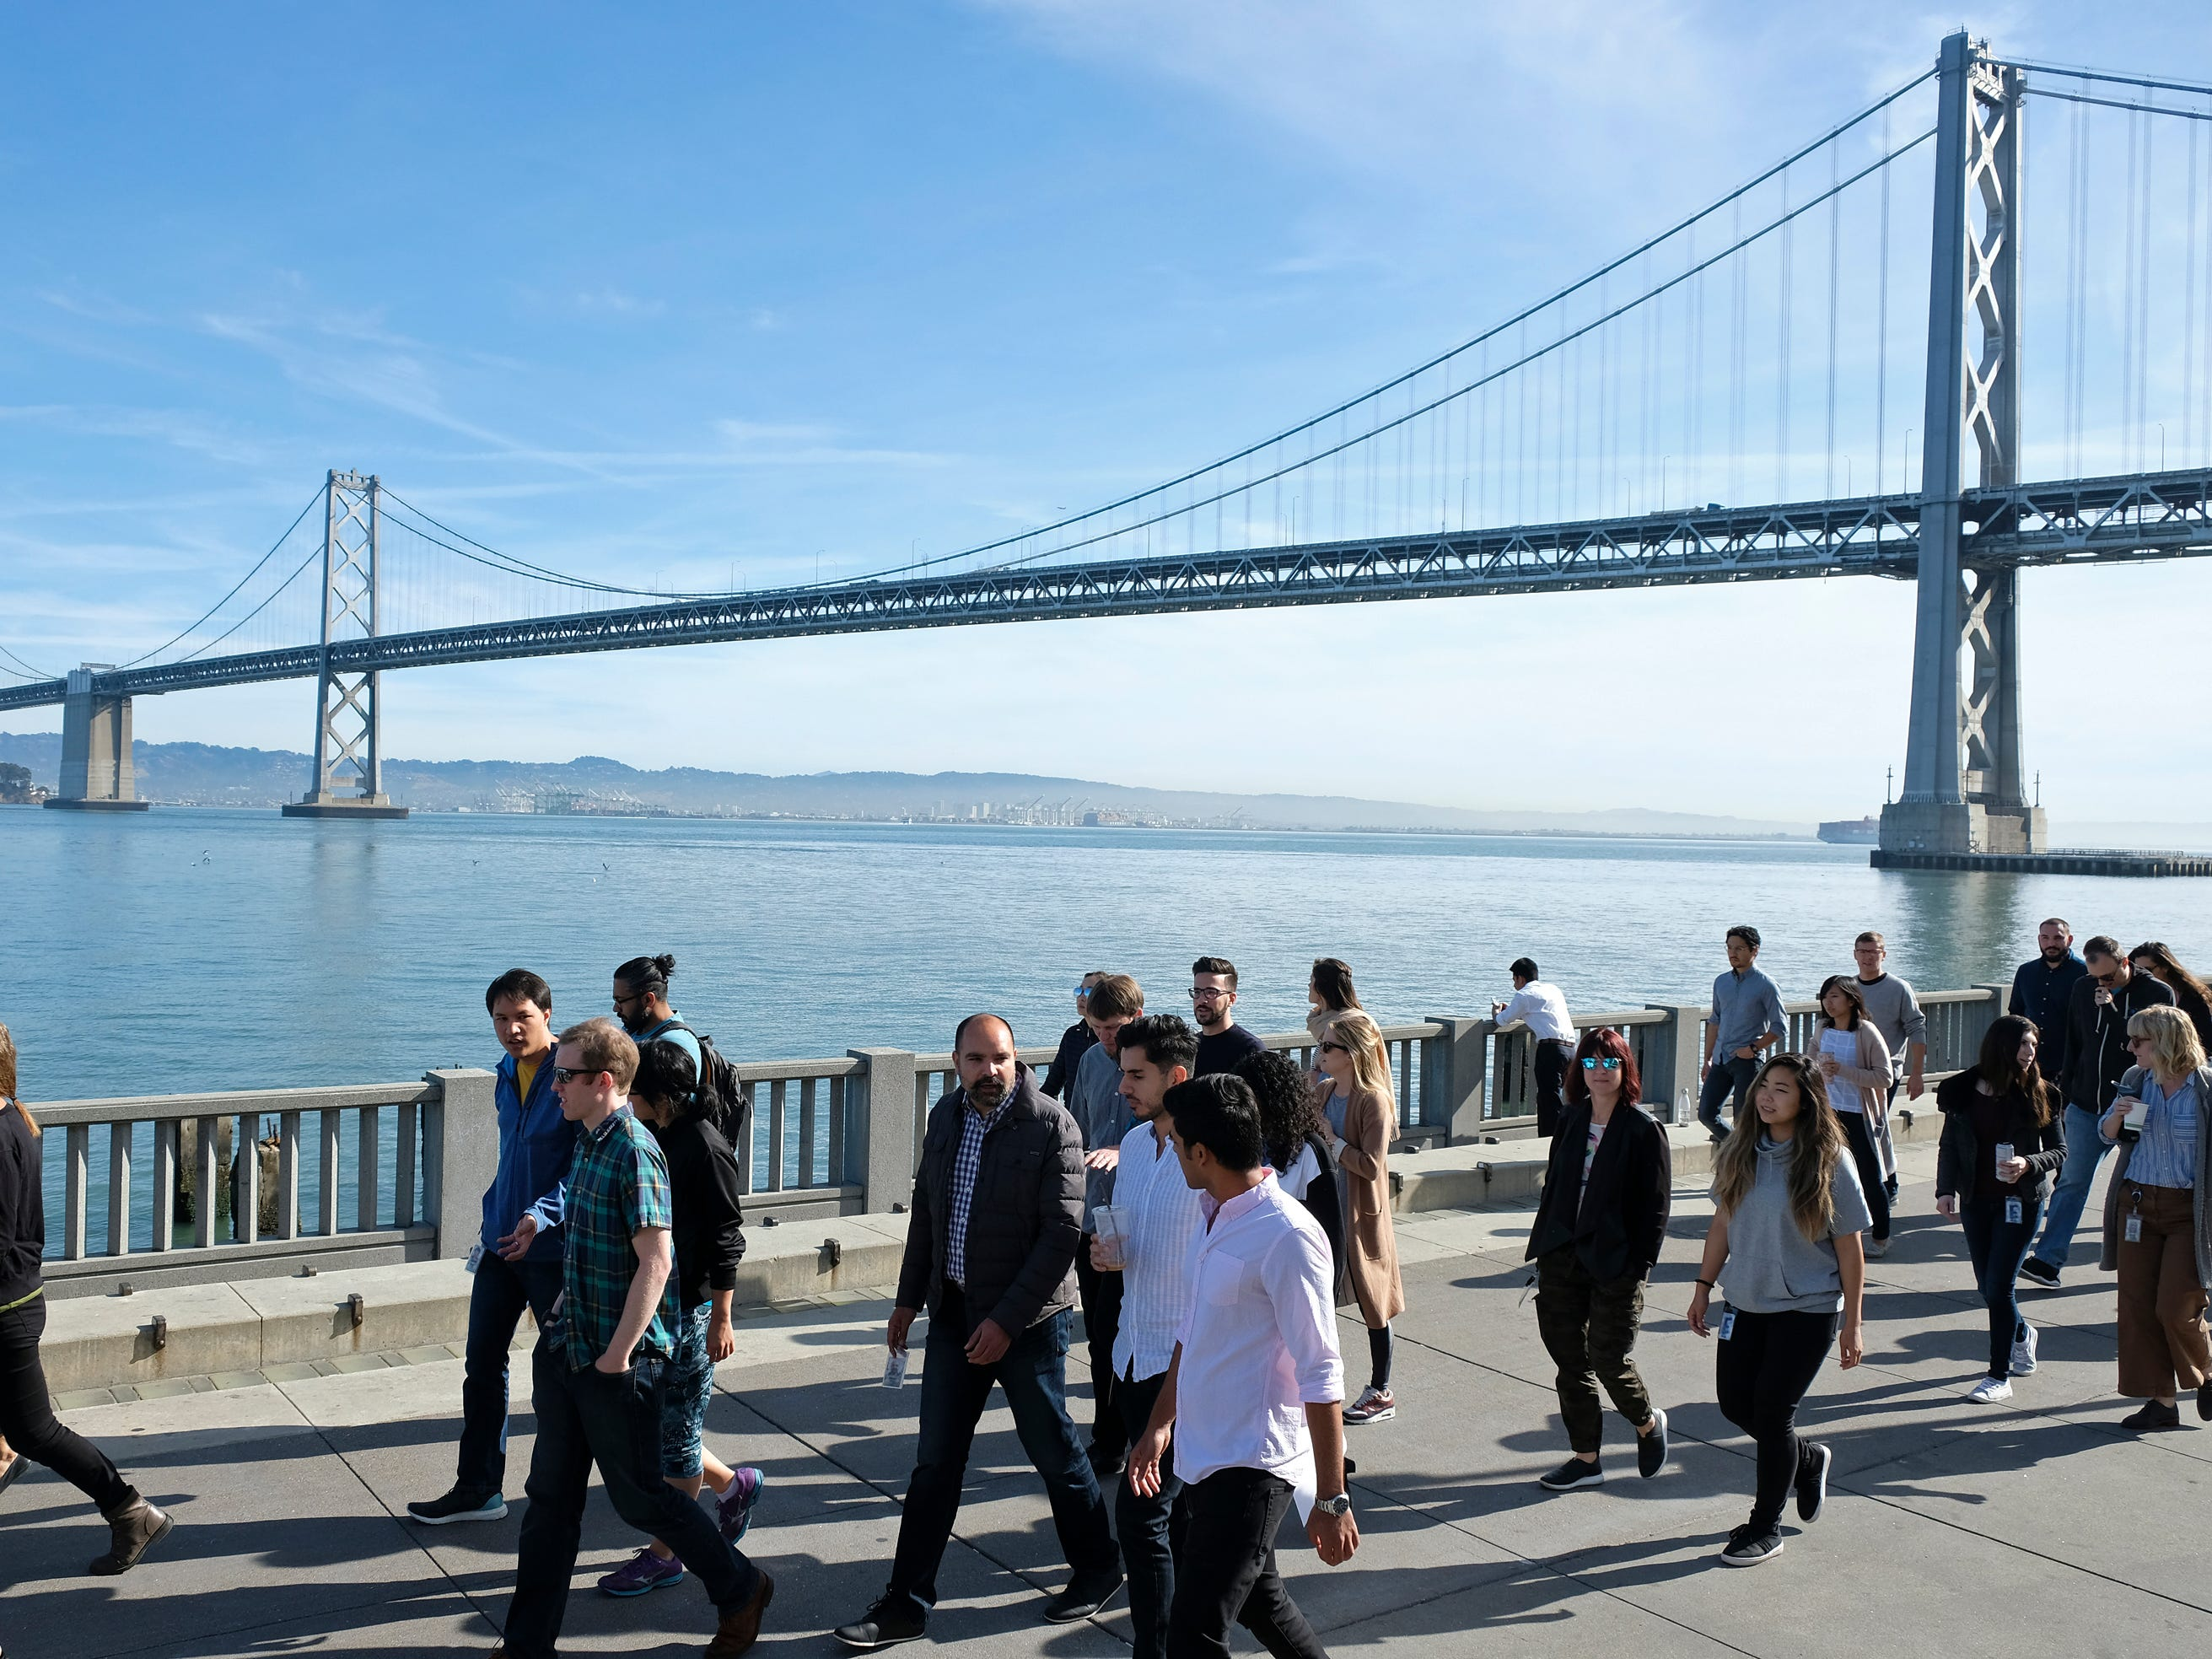 Google employees march along the Embarcadero with the San Francisco-Oakland Bay Bridge in the background during a walkout on Nov. 1, 2018, in San Francisco.